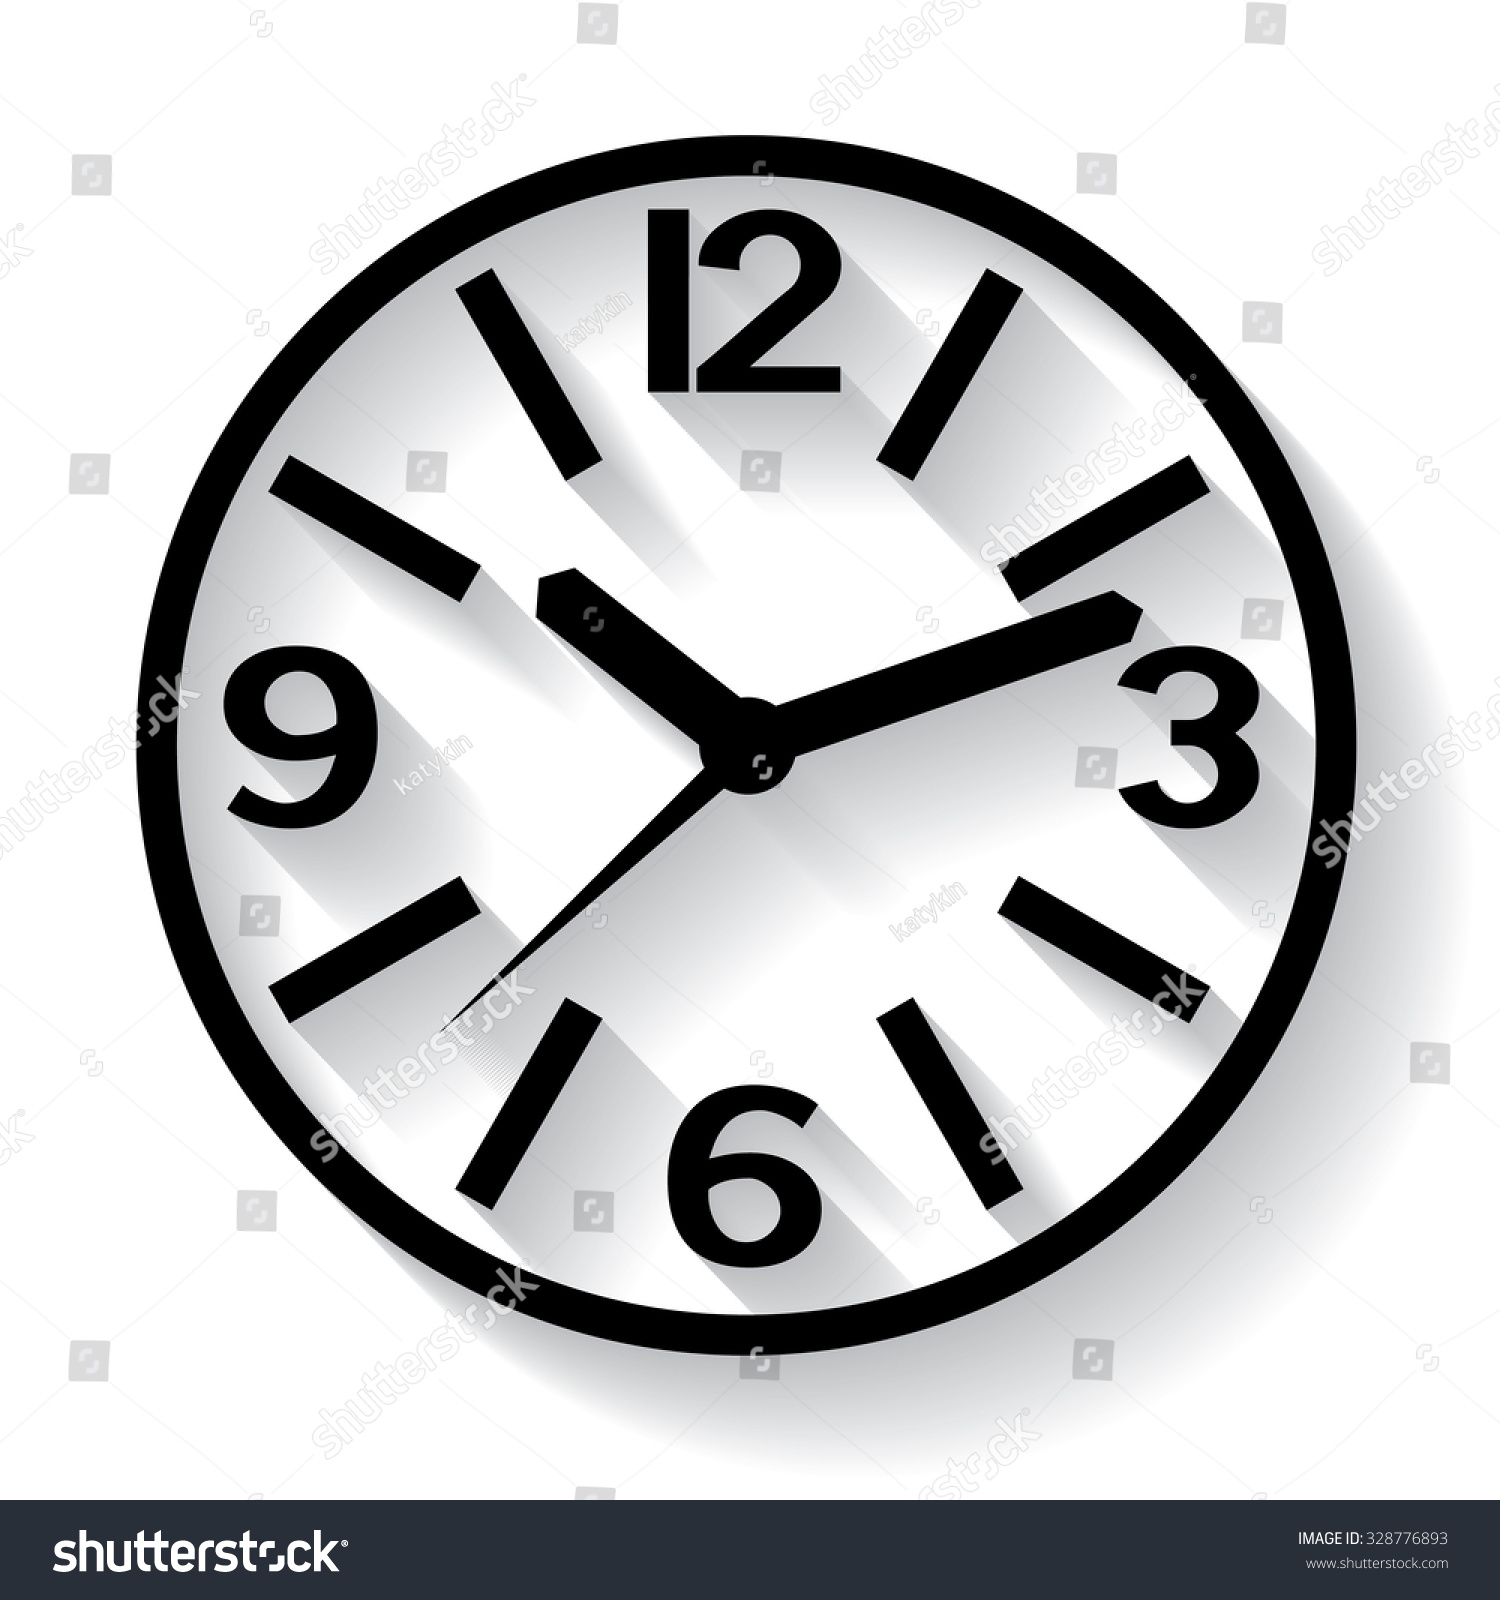 Wall mounted digital clock clock picture stock vector 328776893 wall mounted digital clock clock picture hours watch for wall mounting image amipublicfo Gallery